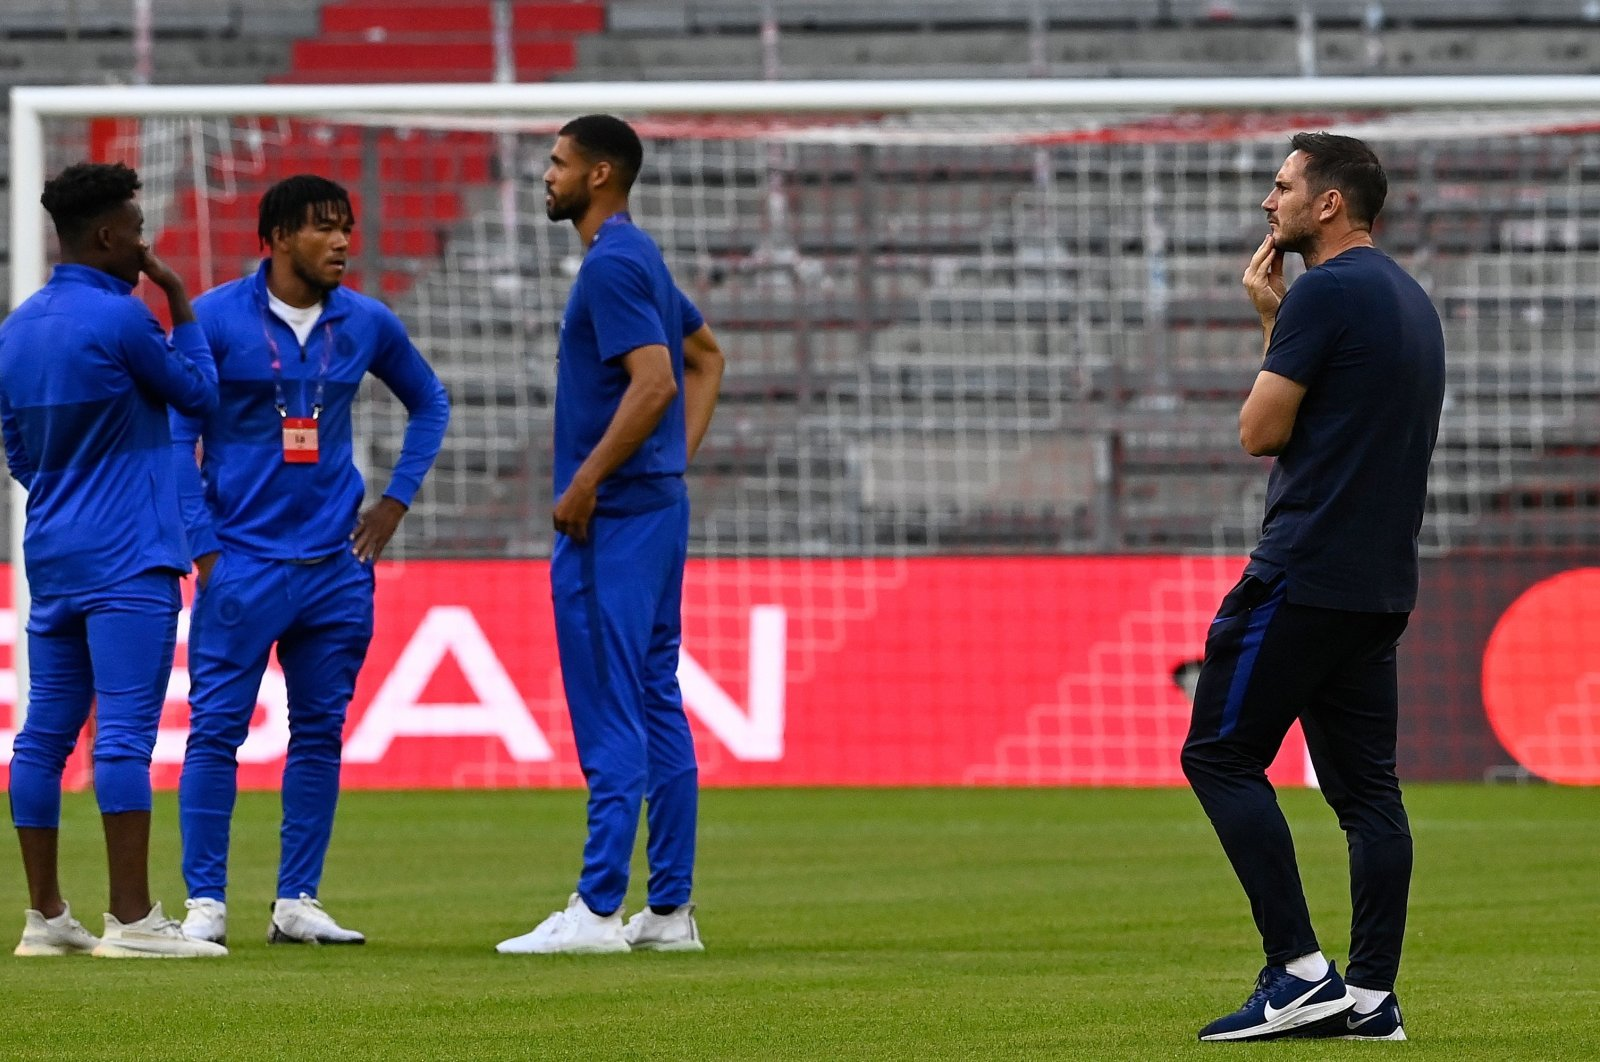 Chelsea's English head coach Frank Lampard (R) and his players inspect the pitch prior to the UEFA Champions League, second-leg round of 16, football match between Bayern Munich and Chelsea in Munich, Germany, Aug. 8, 2020. (AFP Photo)